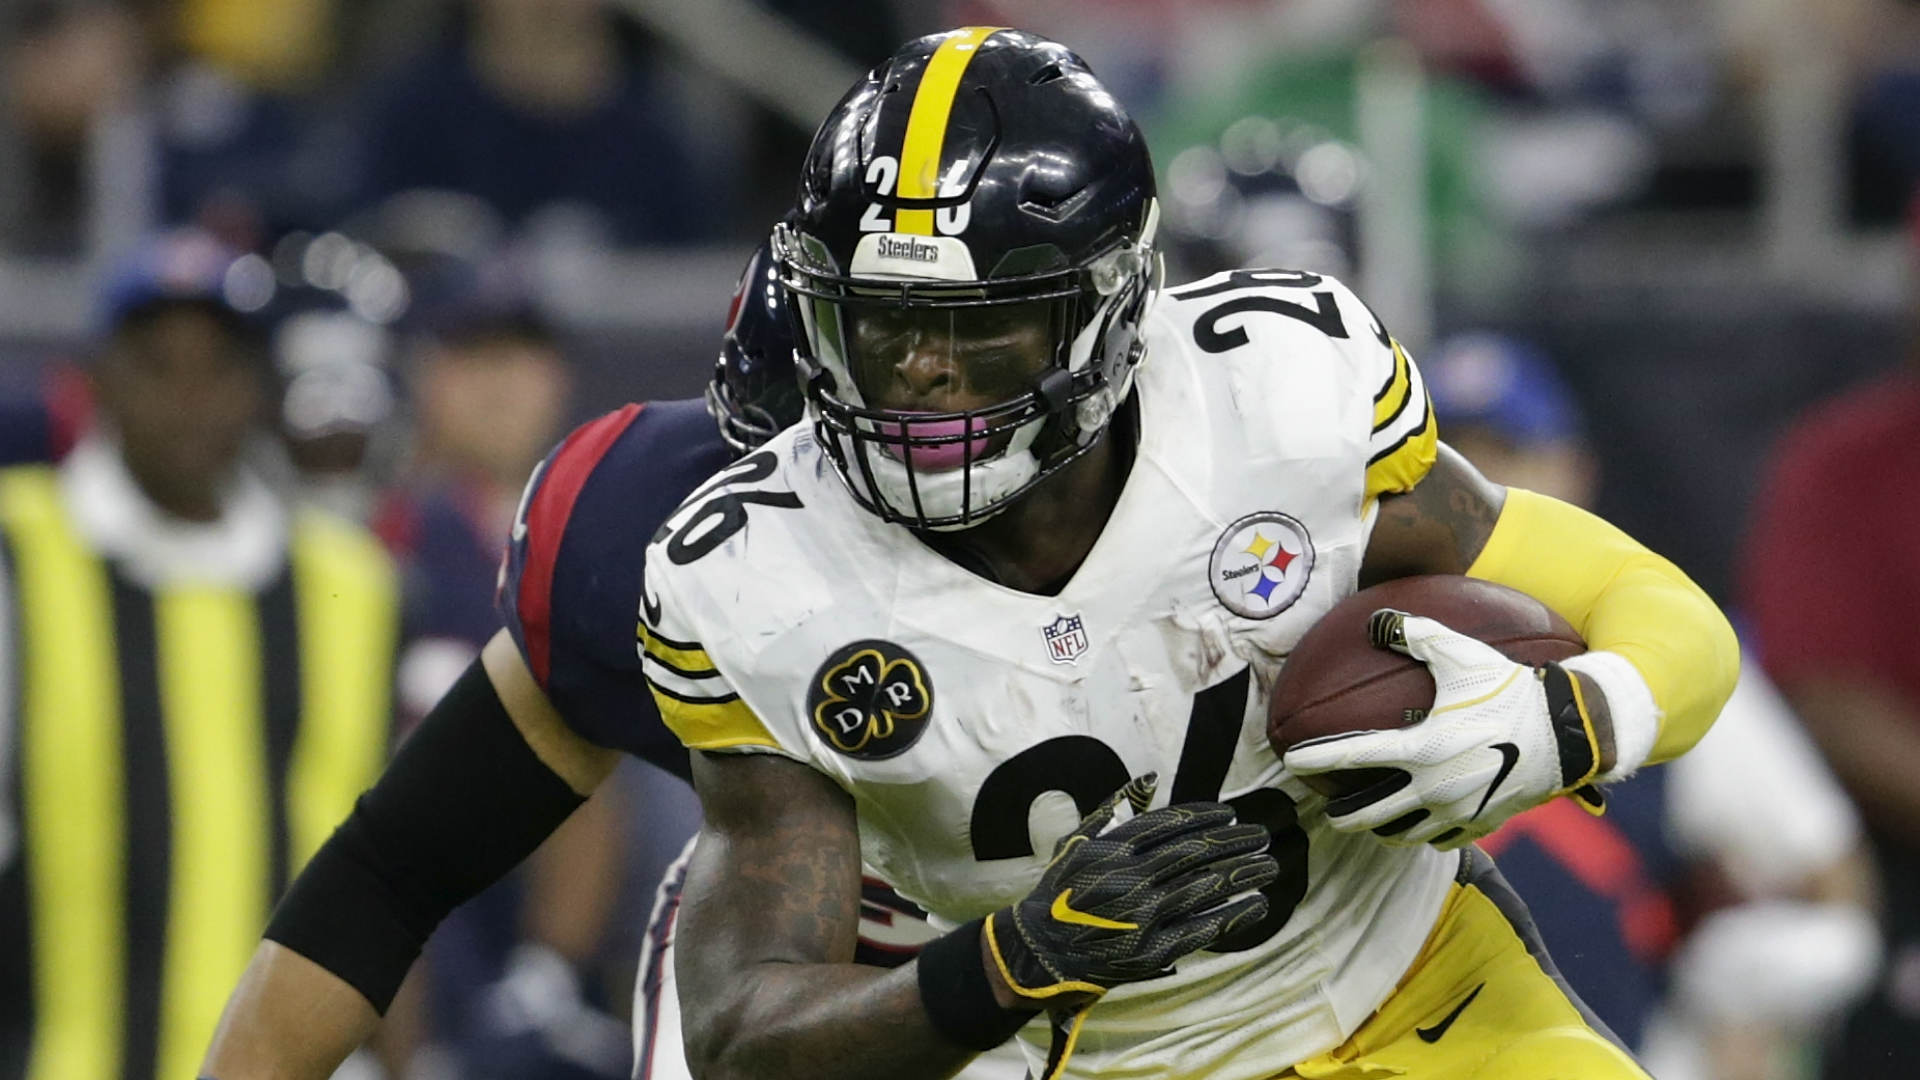 Le'Veon Bell threatens retirement if Steelers give him another franchise tag